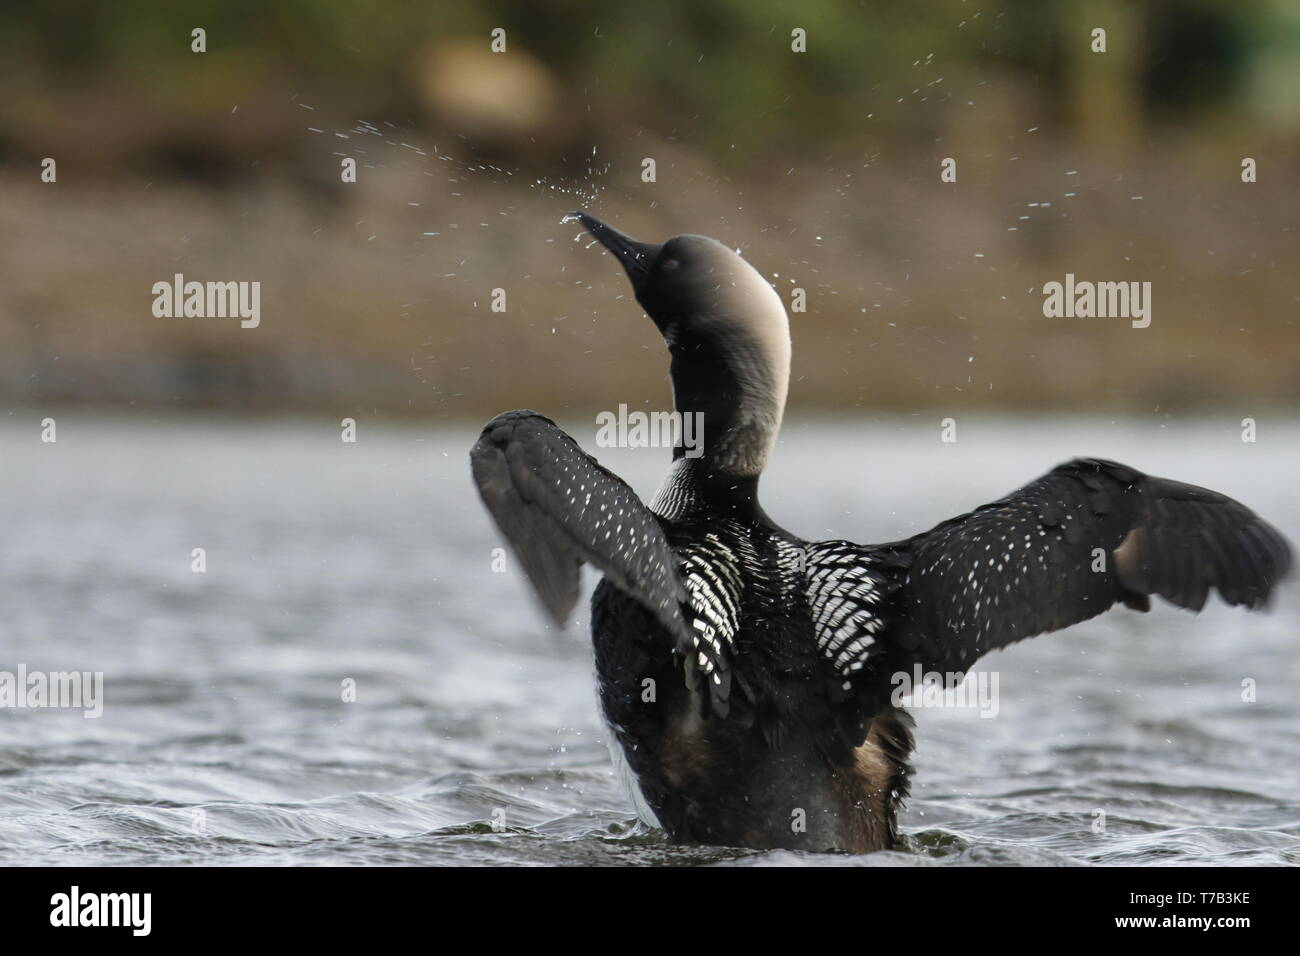 Adult Pacific Loon or Pacific Diver (Gavia pacifica), breeding plumage, flapping wings on water, near Arviat Nunavut, Canada - Stock Image